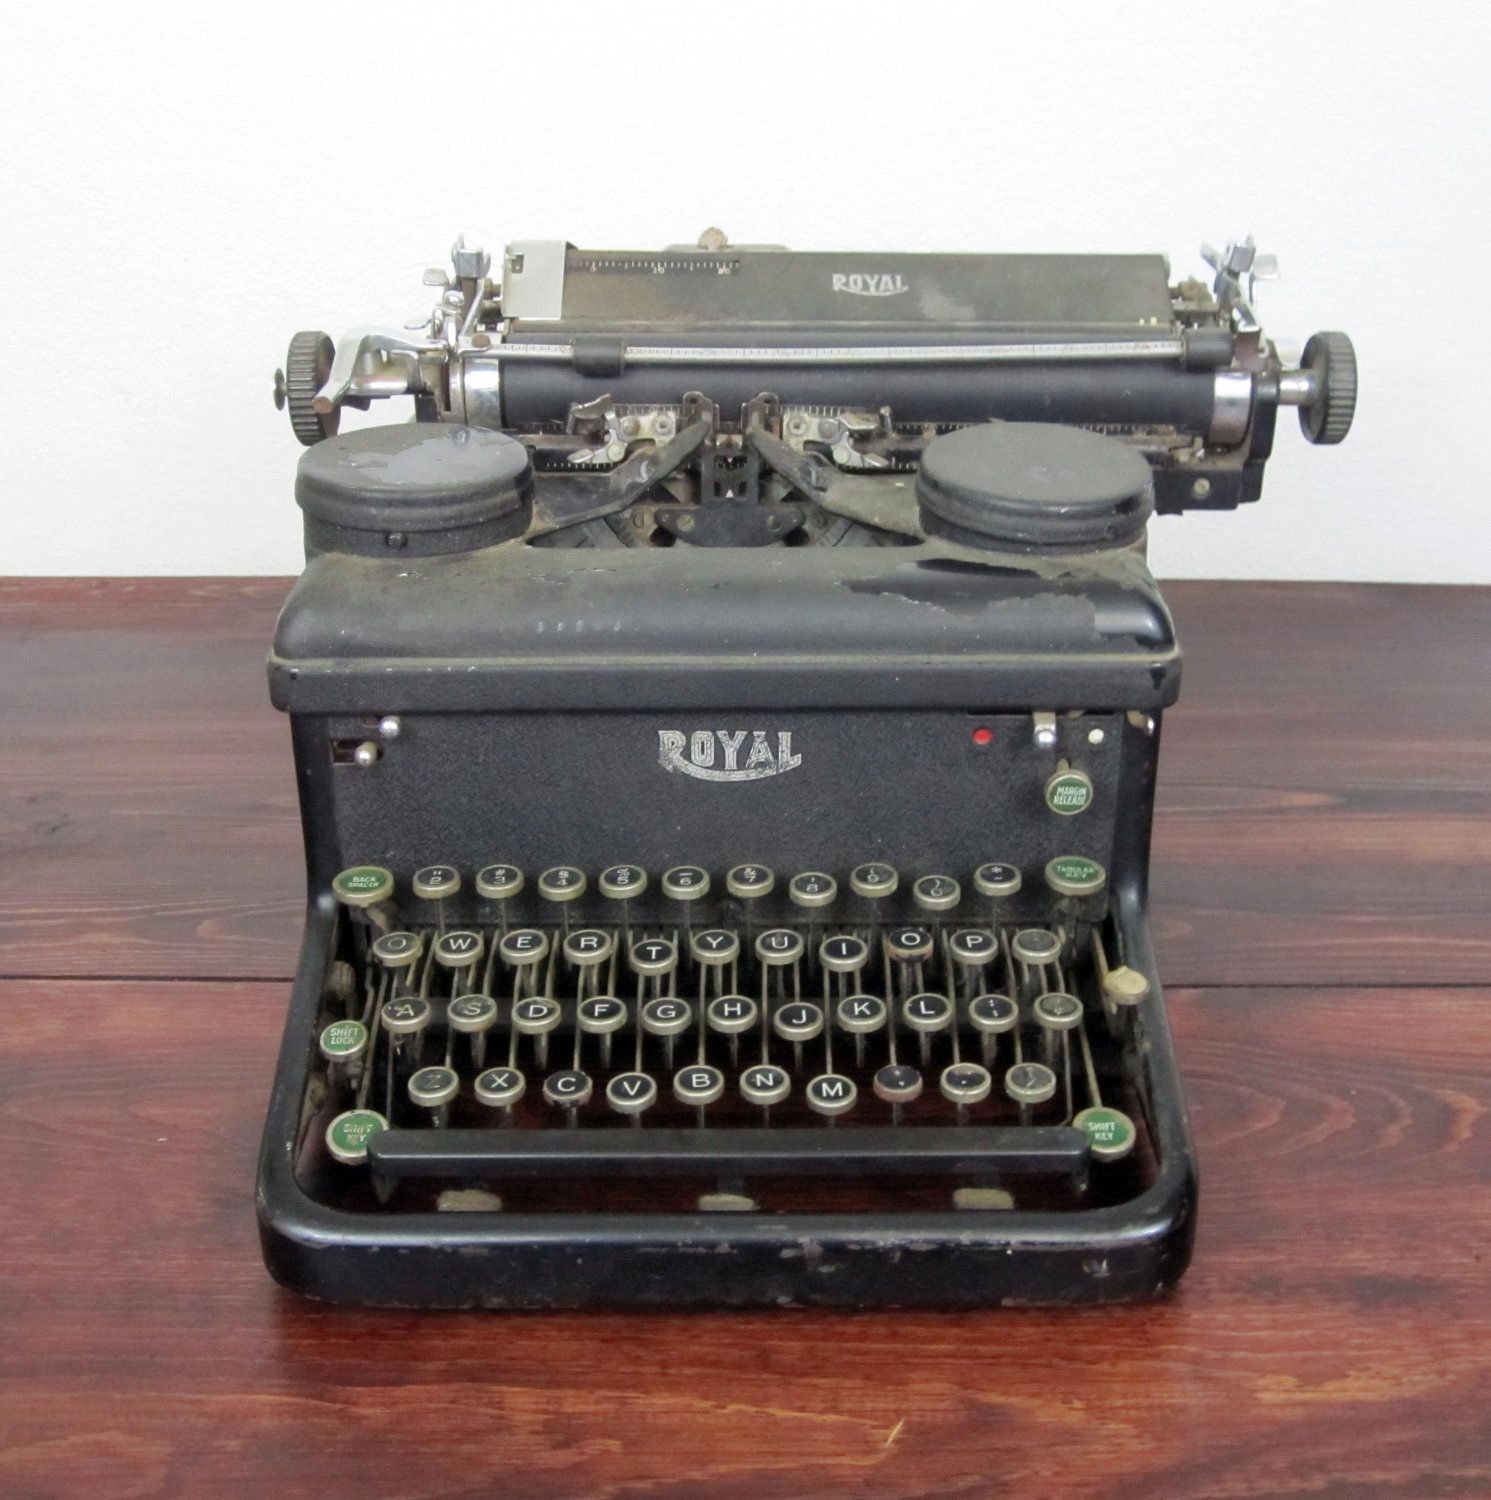 Vintage 1937 Royal KHM Typewriter / Non-Op for Parts, Repair or Upcycling. $45.00, via Etsy.